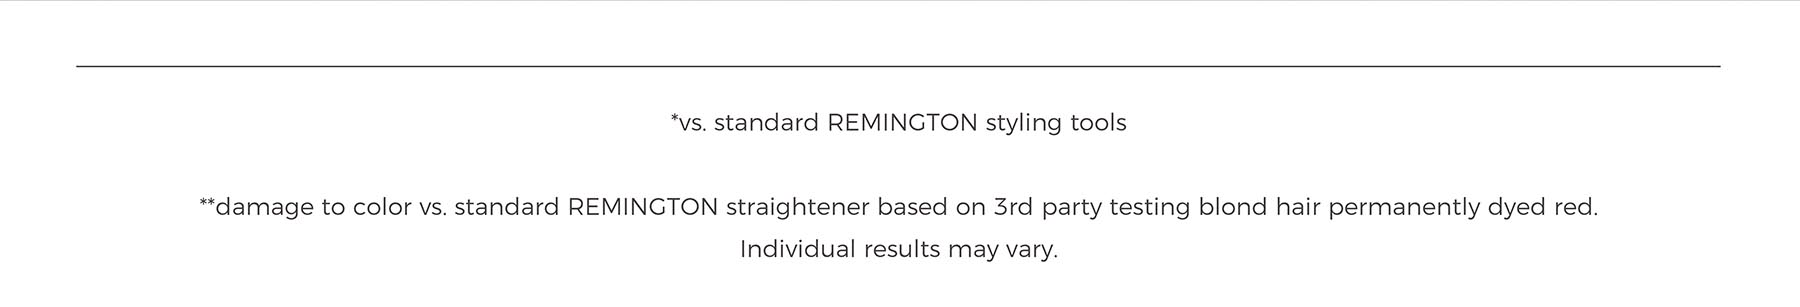 *vs. standard REMINGTON styling tools **damage to color vs. standard REMINGTON straightener based on 3rd party testing blond hair permanently dyed red. Individual results may vary.